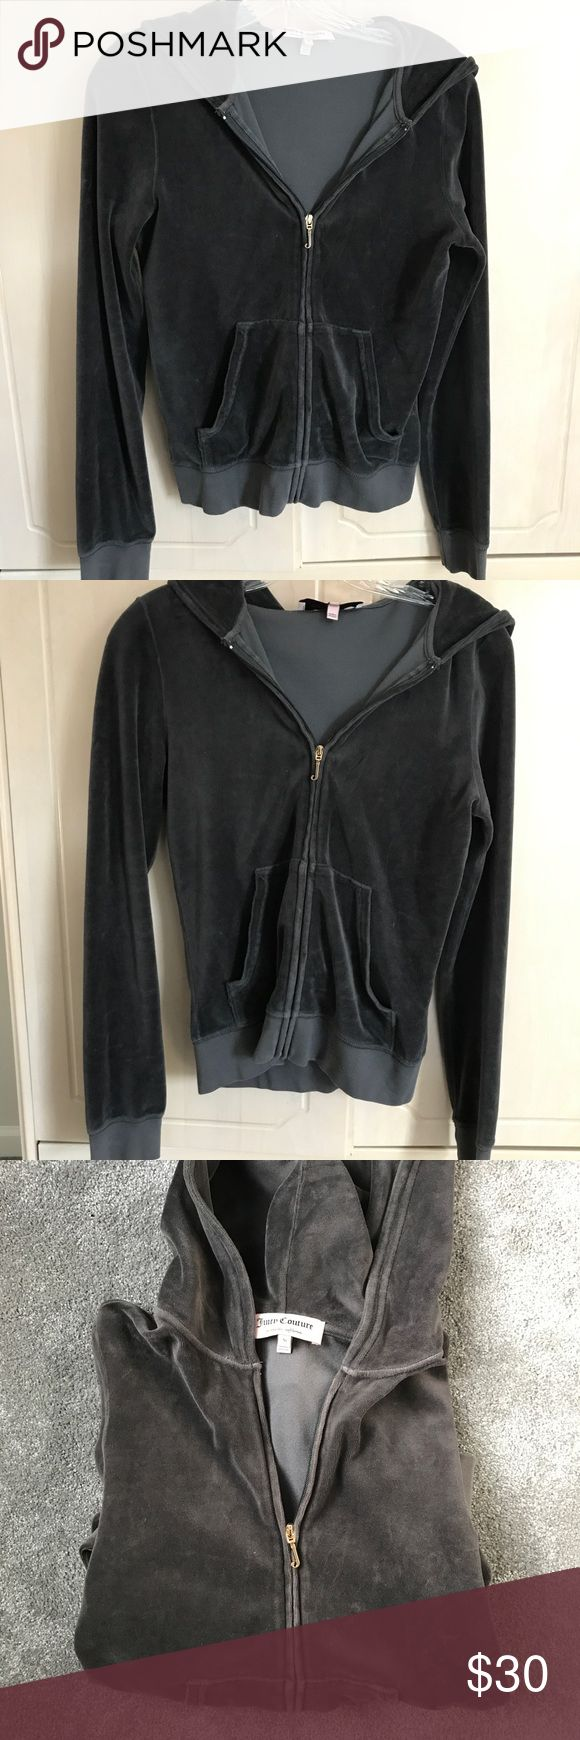 dark grey JUICY jacket Dark grey velour JUICY COUTURE jacket with gold zipper.  size M, fits like a s/m. Worn very few times, excellent condition, no major signs of wear, super soft. pants available as well for full tracksuit - bundle for discount/ make an offer! Juicy Couture Jackets & Coats